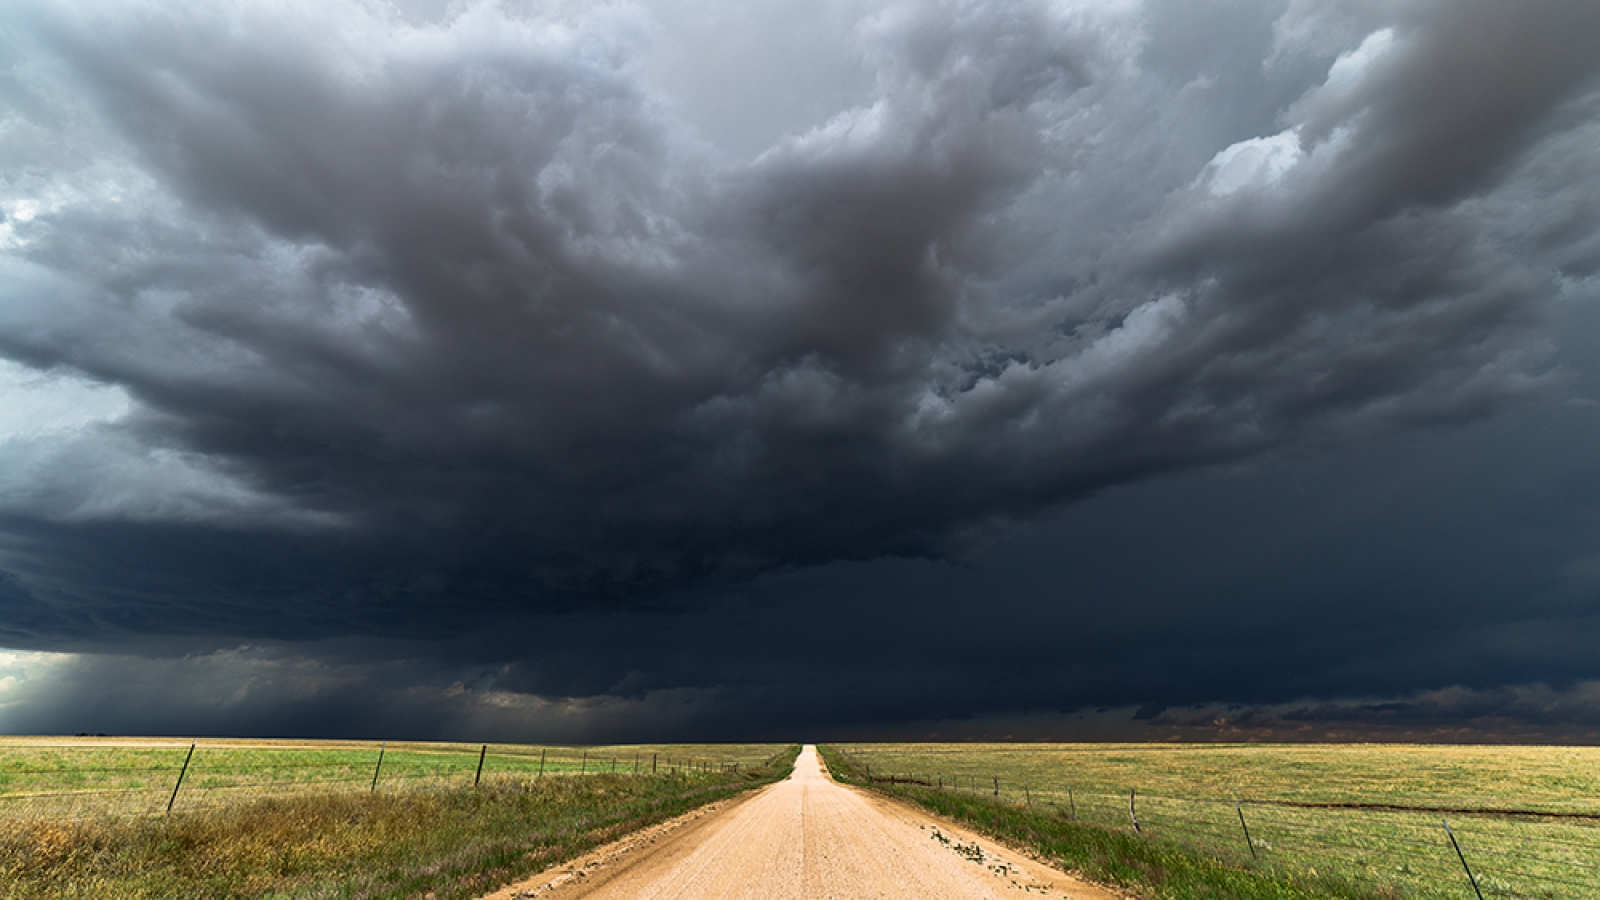 dirt road leading to storm on horizon